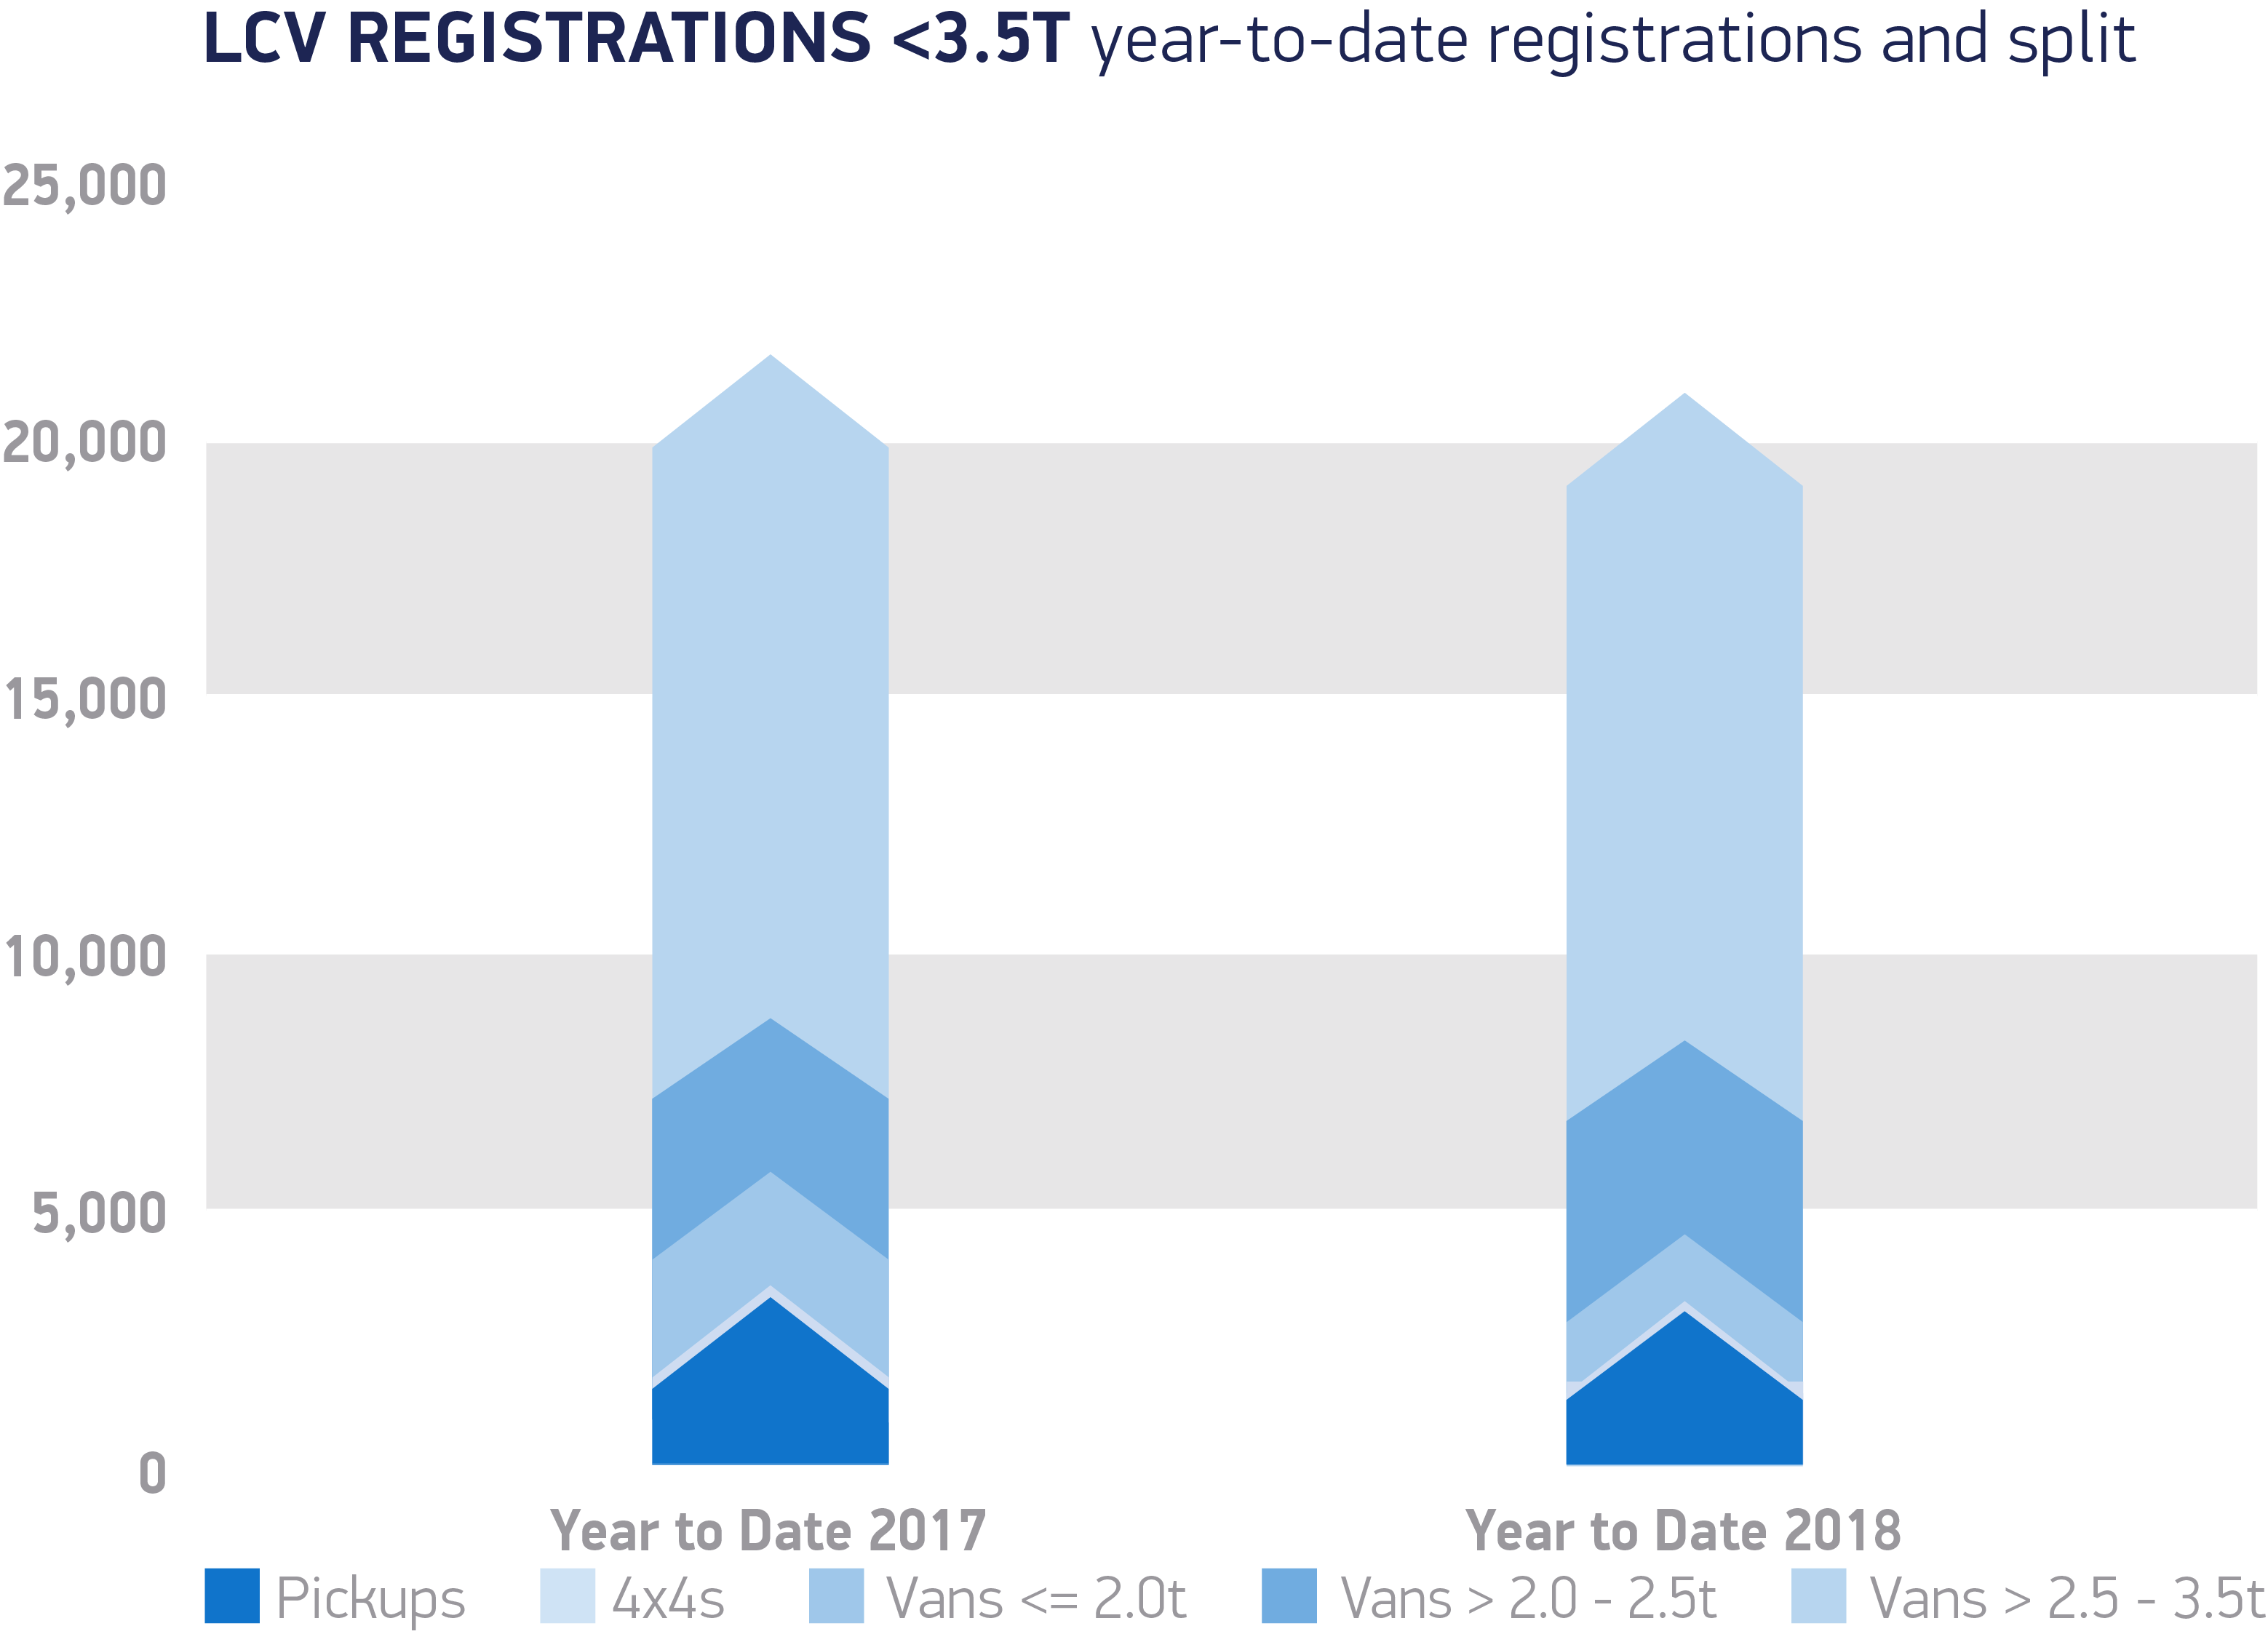 van registrations january 2018 UK